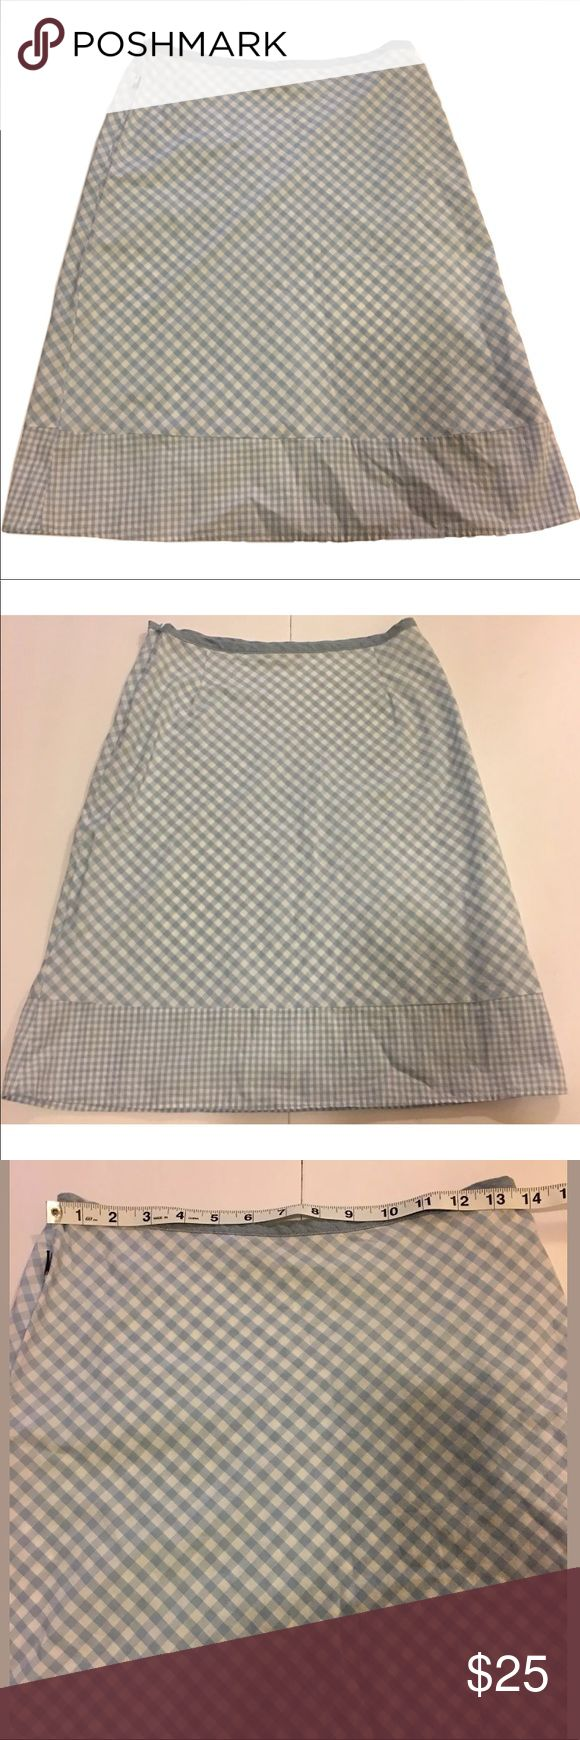 Tommy Hilfiger Gingham Cotton Mini Skirt Size 3 Tommy Hilfiger Tommy Jeans Skirt Juniors Size 3 Gingham 100% Cotton Blue White   ✅Small hole from sensor tag near zipper area - see last picture.   Please see pictures for measurements.            Ref:o#ooet5kyoq Tommy Hilfiger Skirts